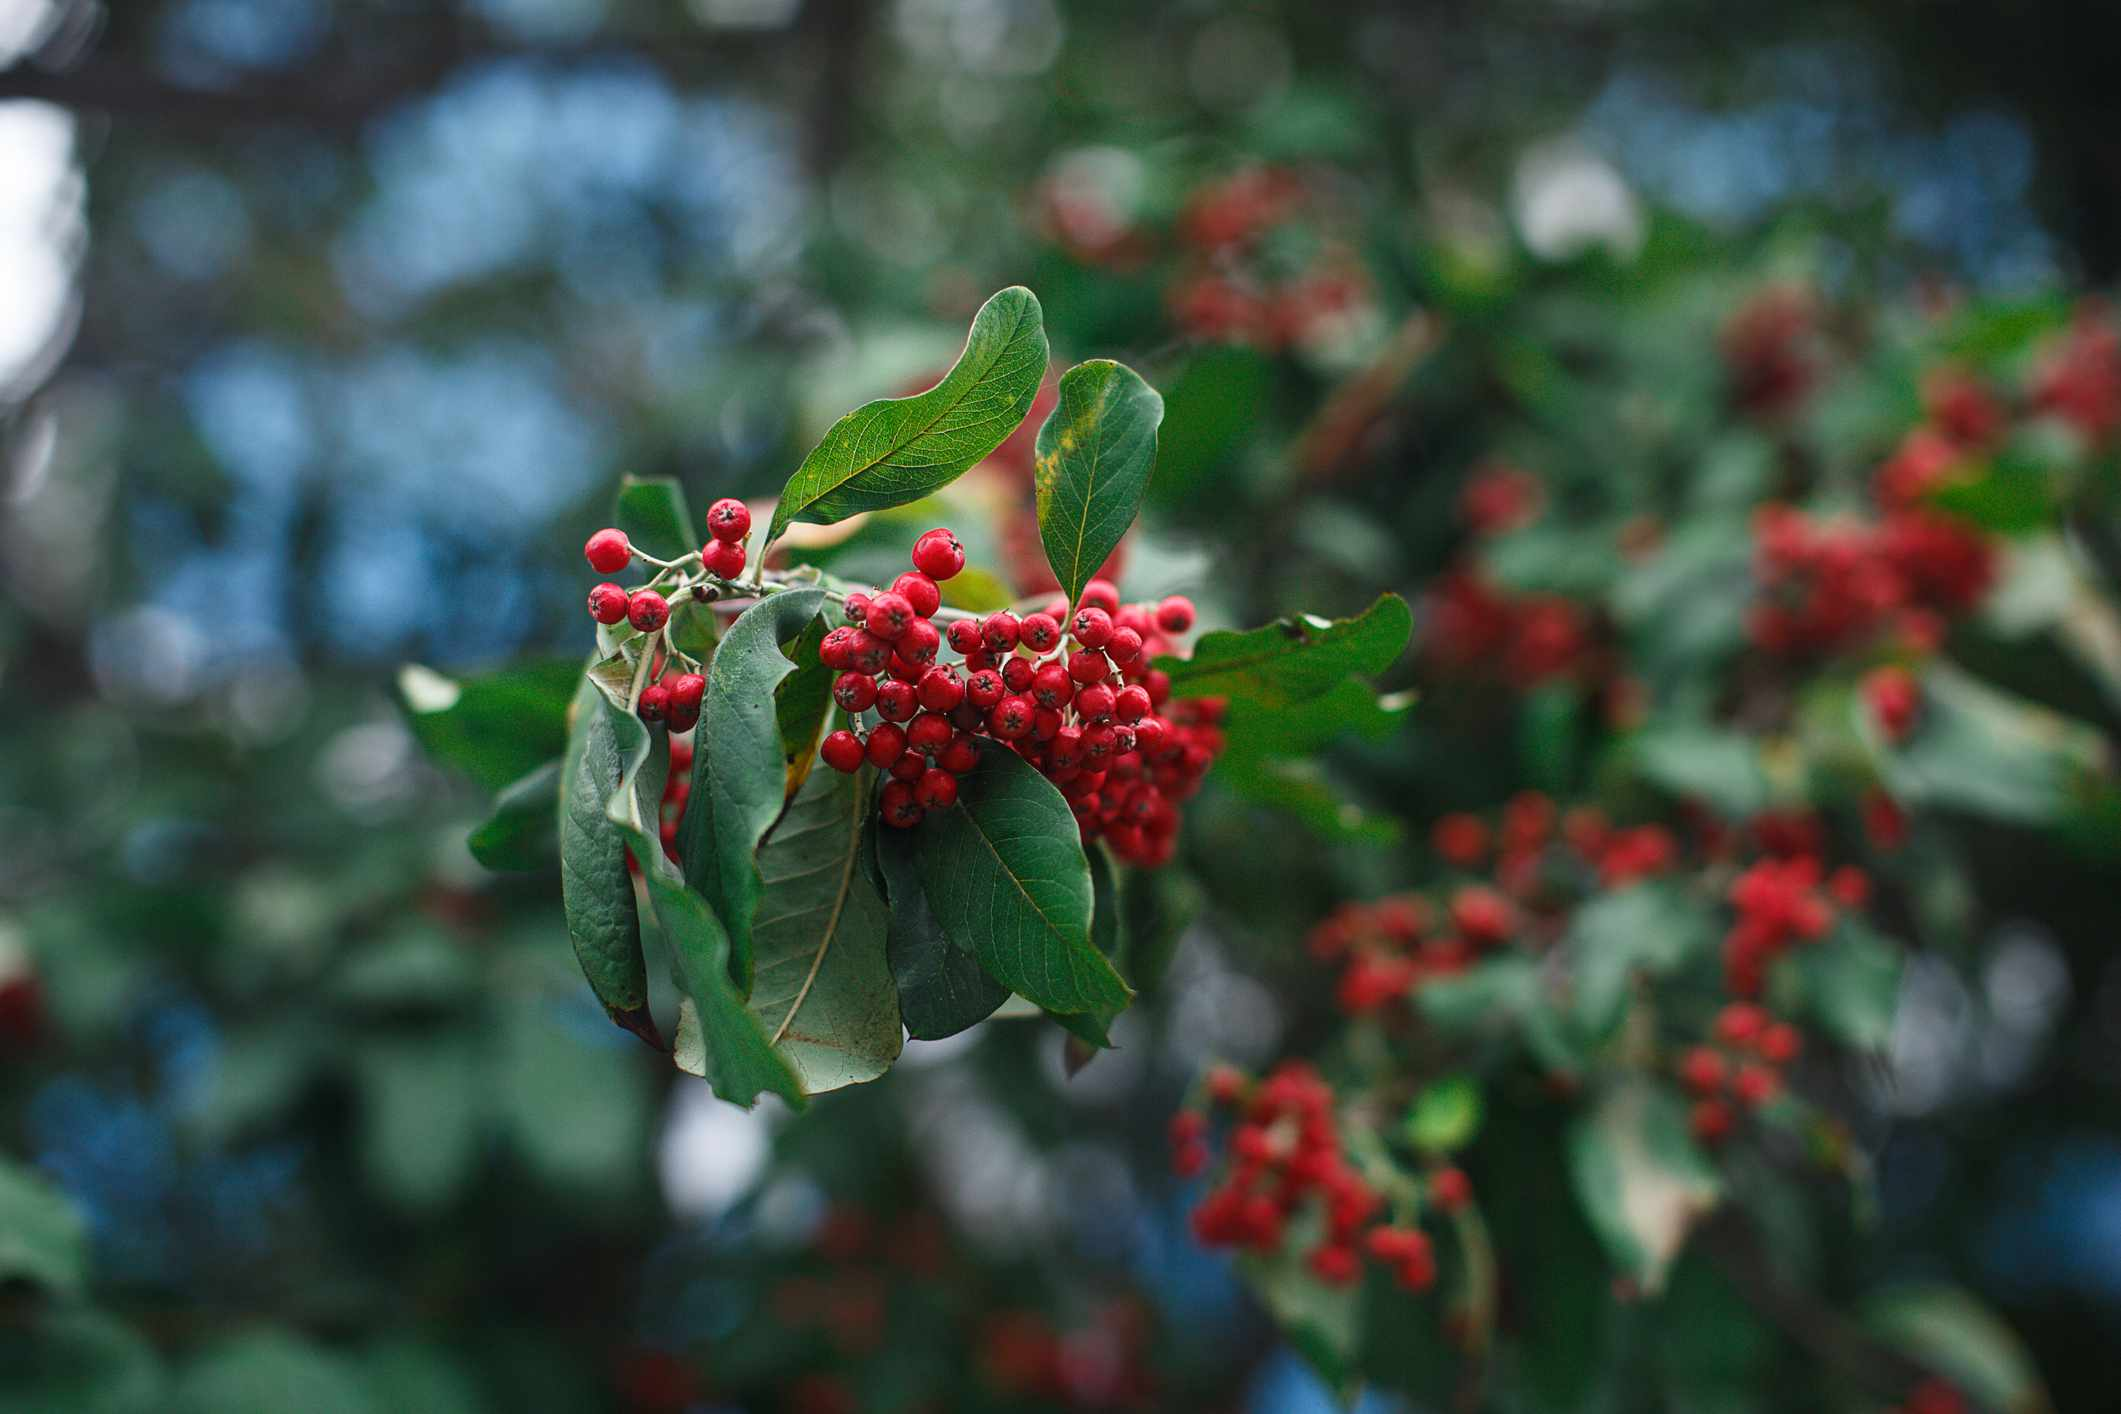 A branch of red winterberry holly tree